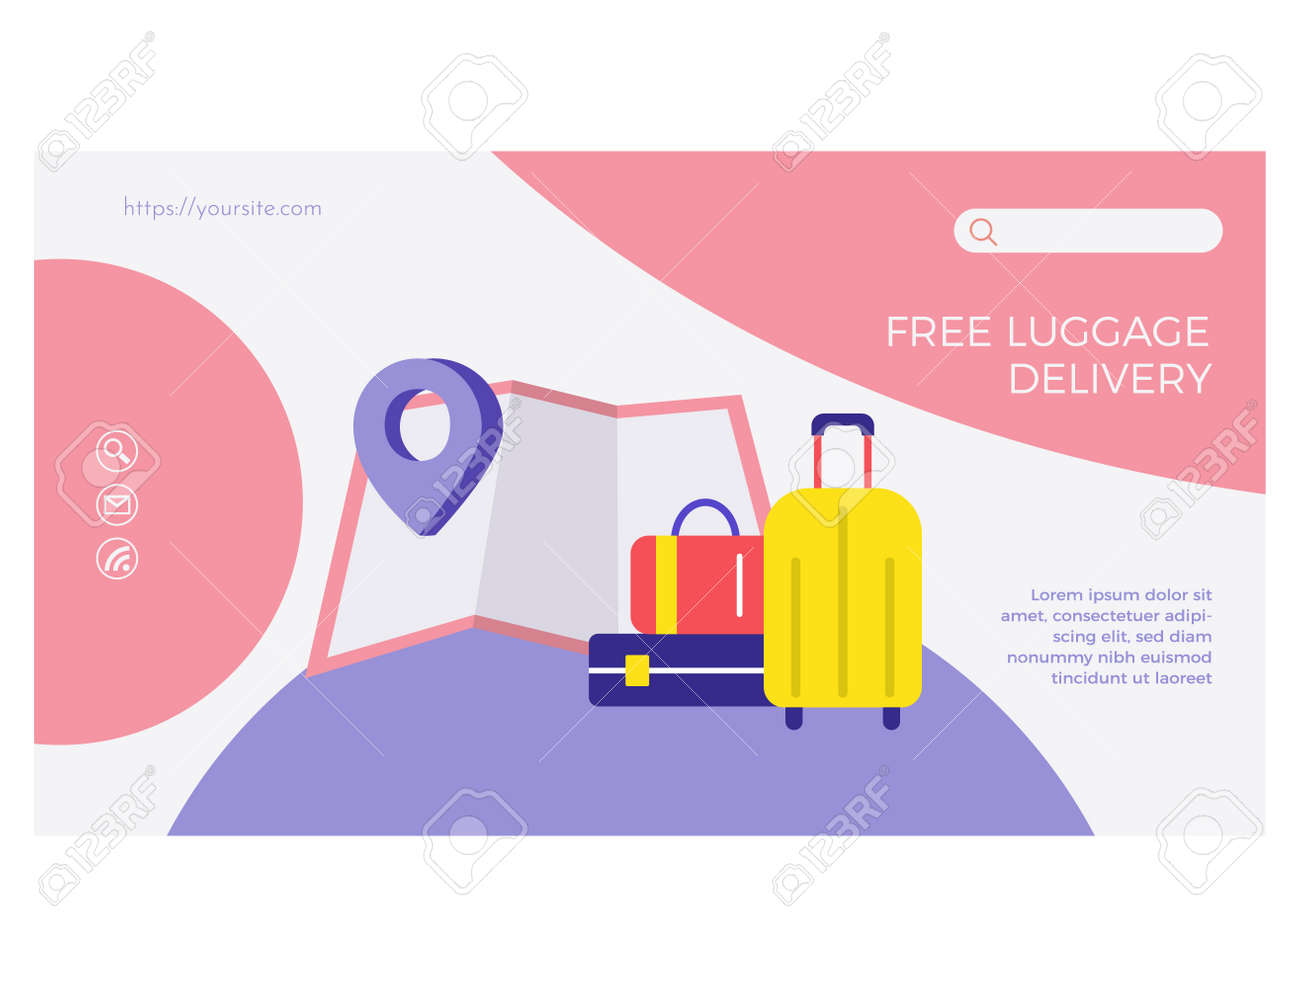 Fast worldwide delivery web page flat design - 169165437